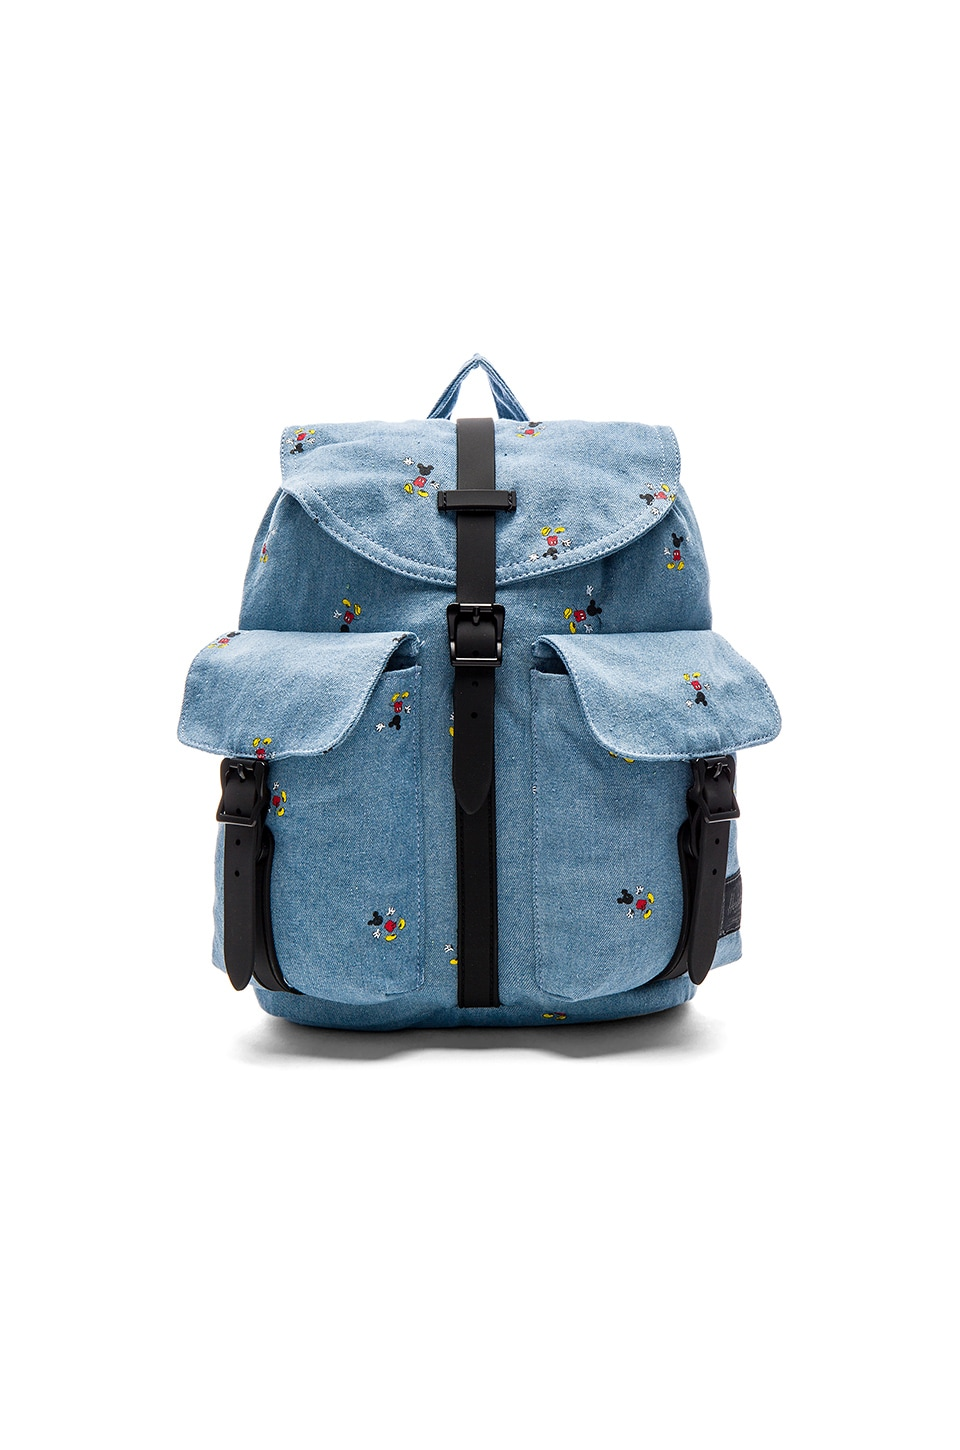 Herschel Supply Co. For Disney Dawson in Denim & Black